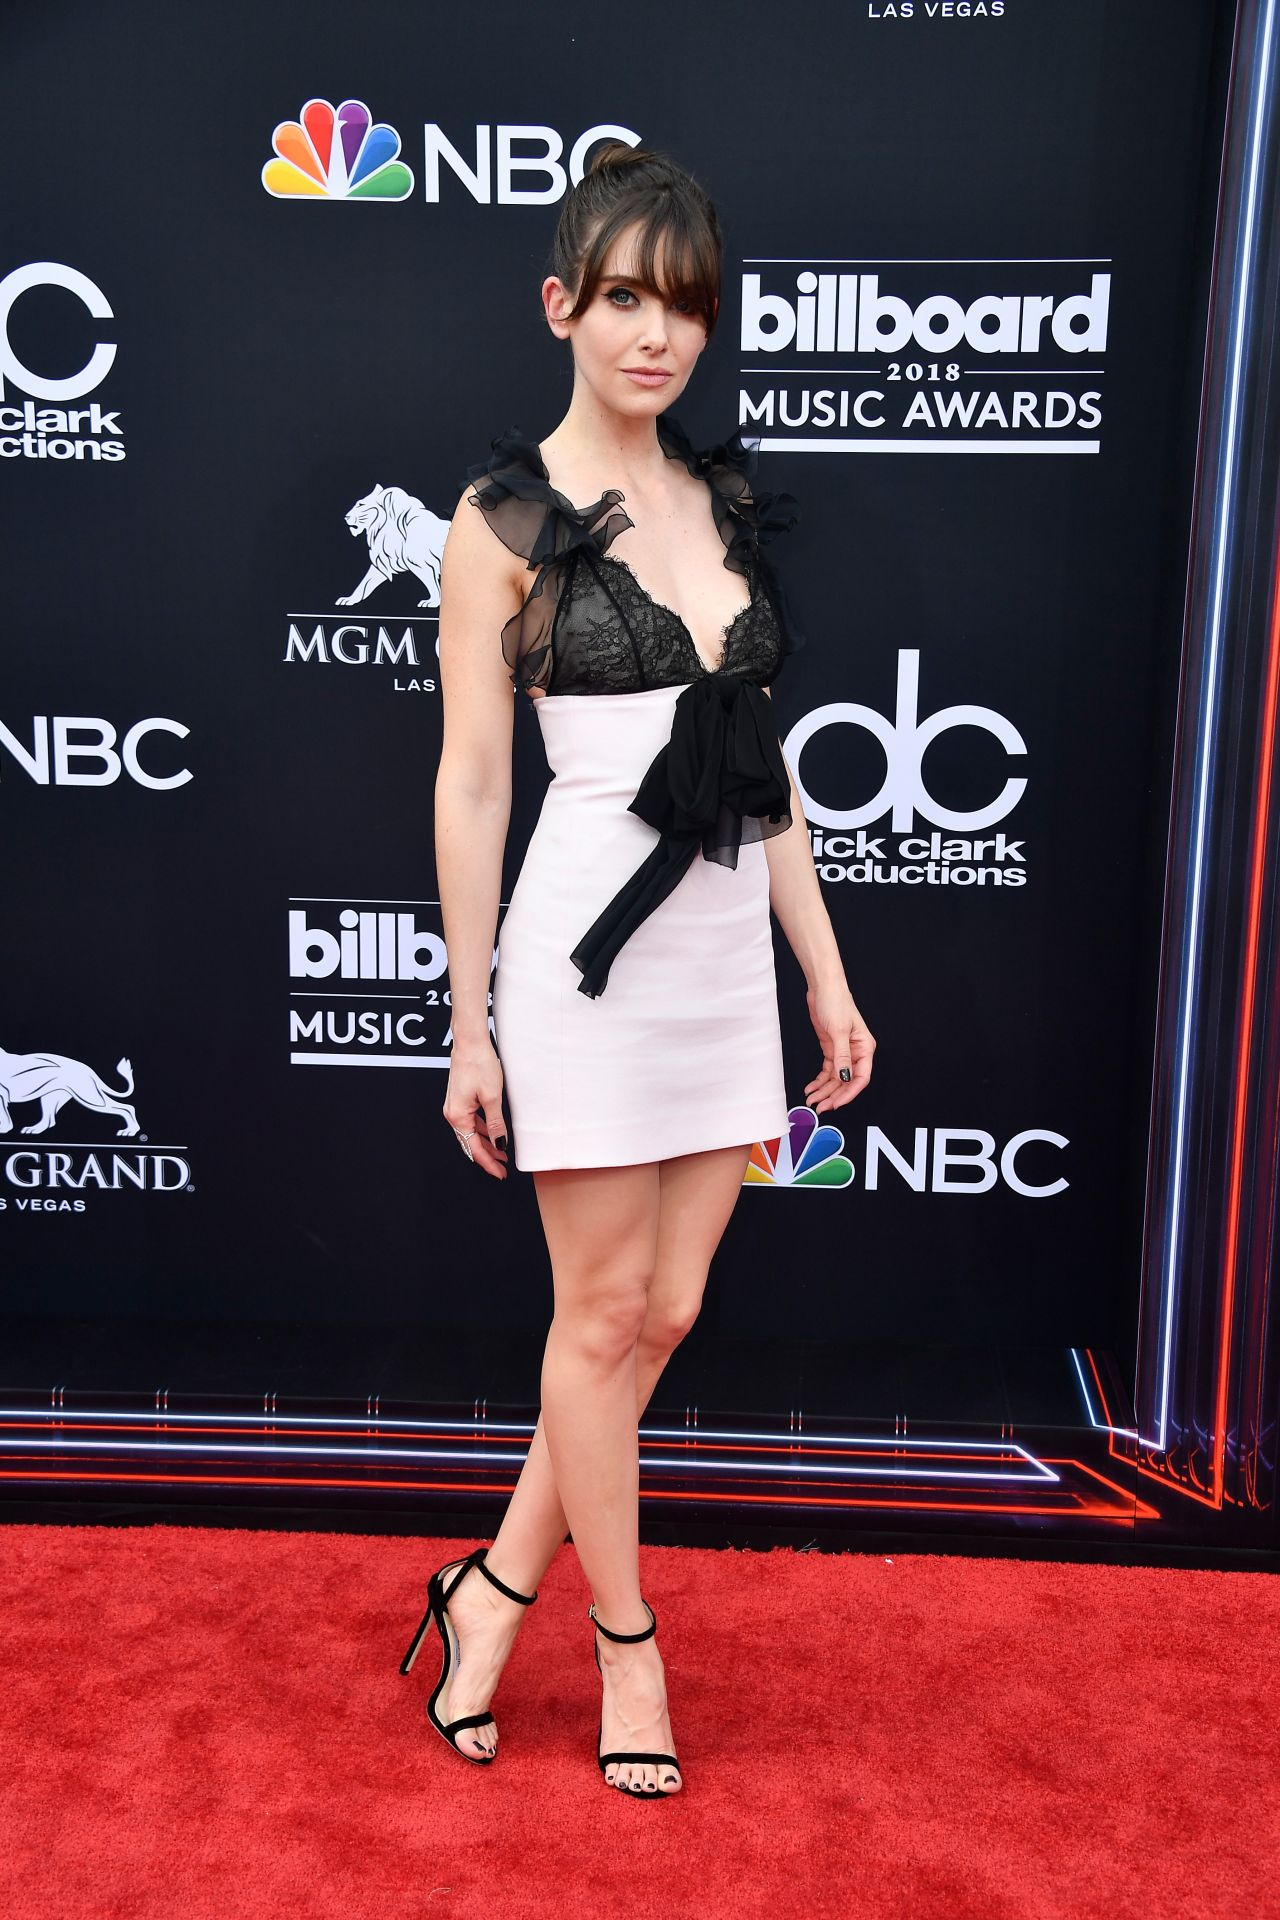 http://celebmafia.com/wp-content/uploads/2018/05/alison-brie-2018-billboard-music-awards-in-las-vegas-5.jpg